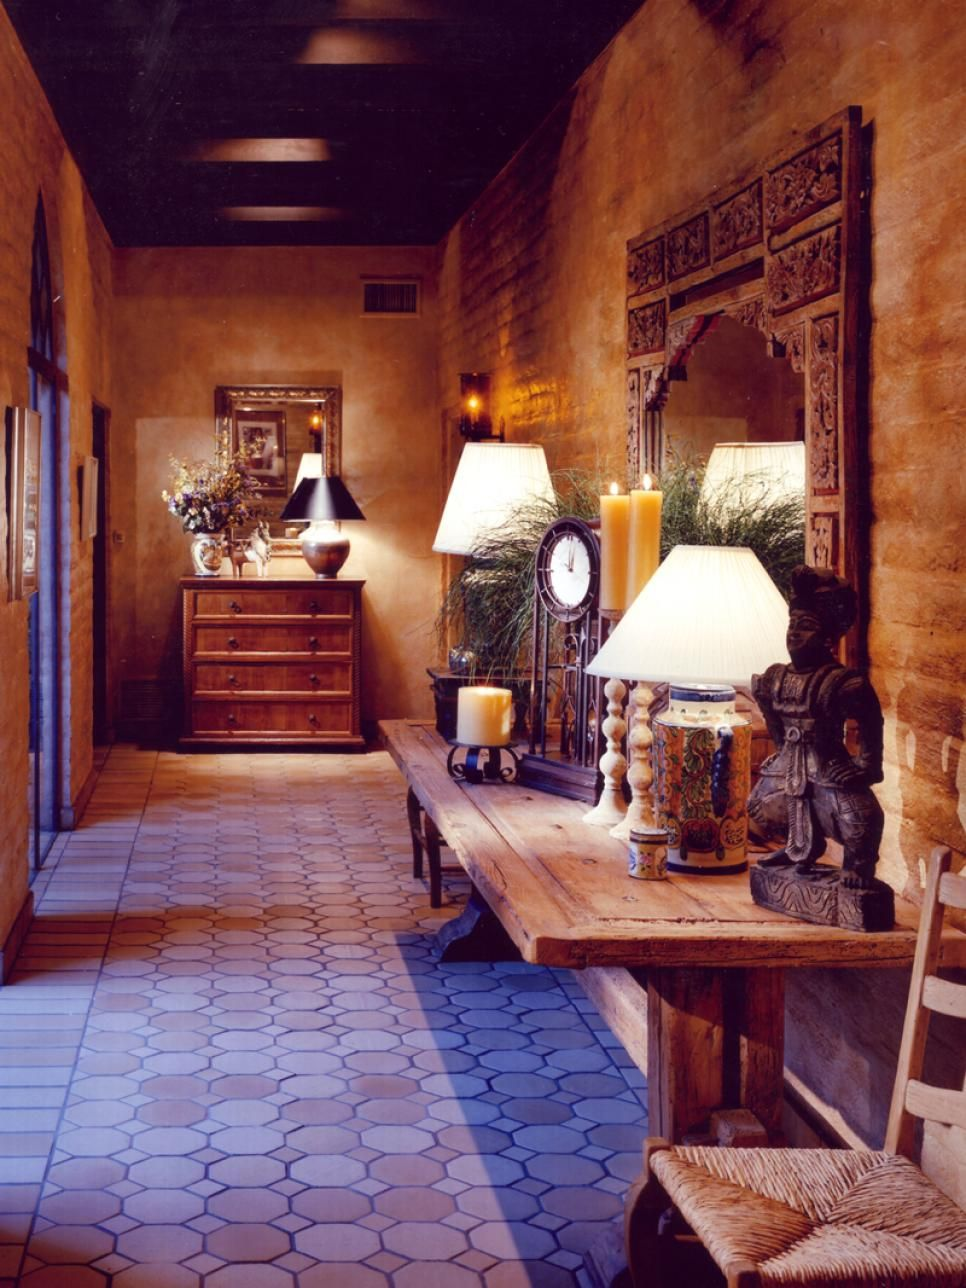 20 Modern Colonial Interior Decorating Ideas Inspired By Beautiful Colonial Homes: The Mediterranean-inspired Look Of This Space Comes Together With Rustic, Wooden Furnishings